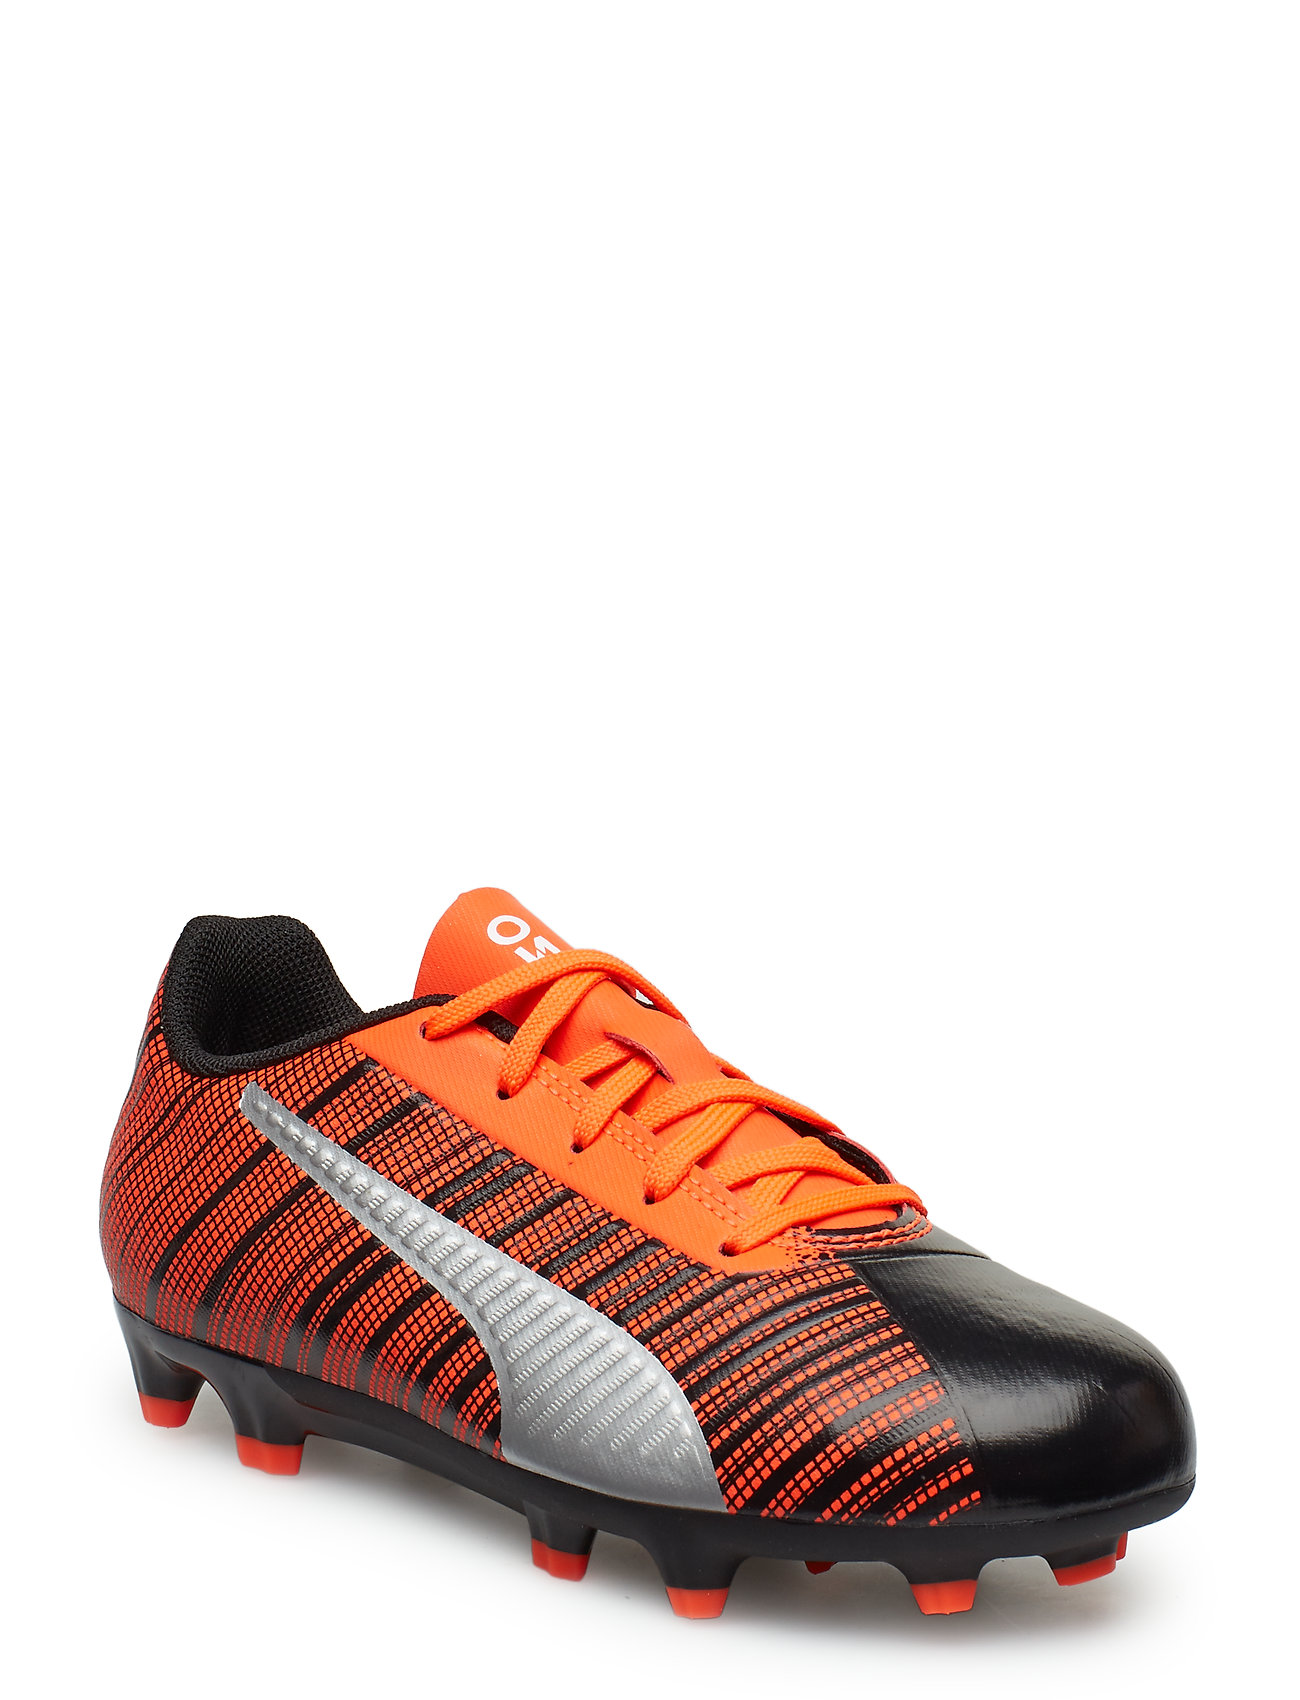 PUMA PUMA ONE 5.4 FG/AG Jr - PUMA BLACK-NRGY RED-PUMA AGED SILVER